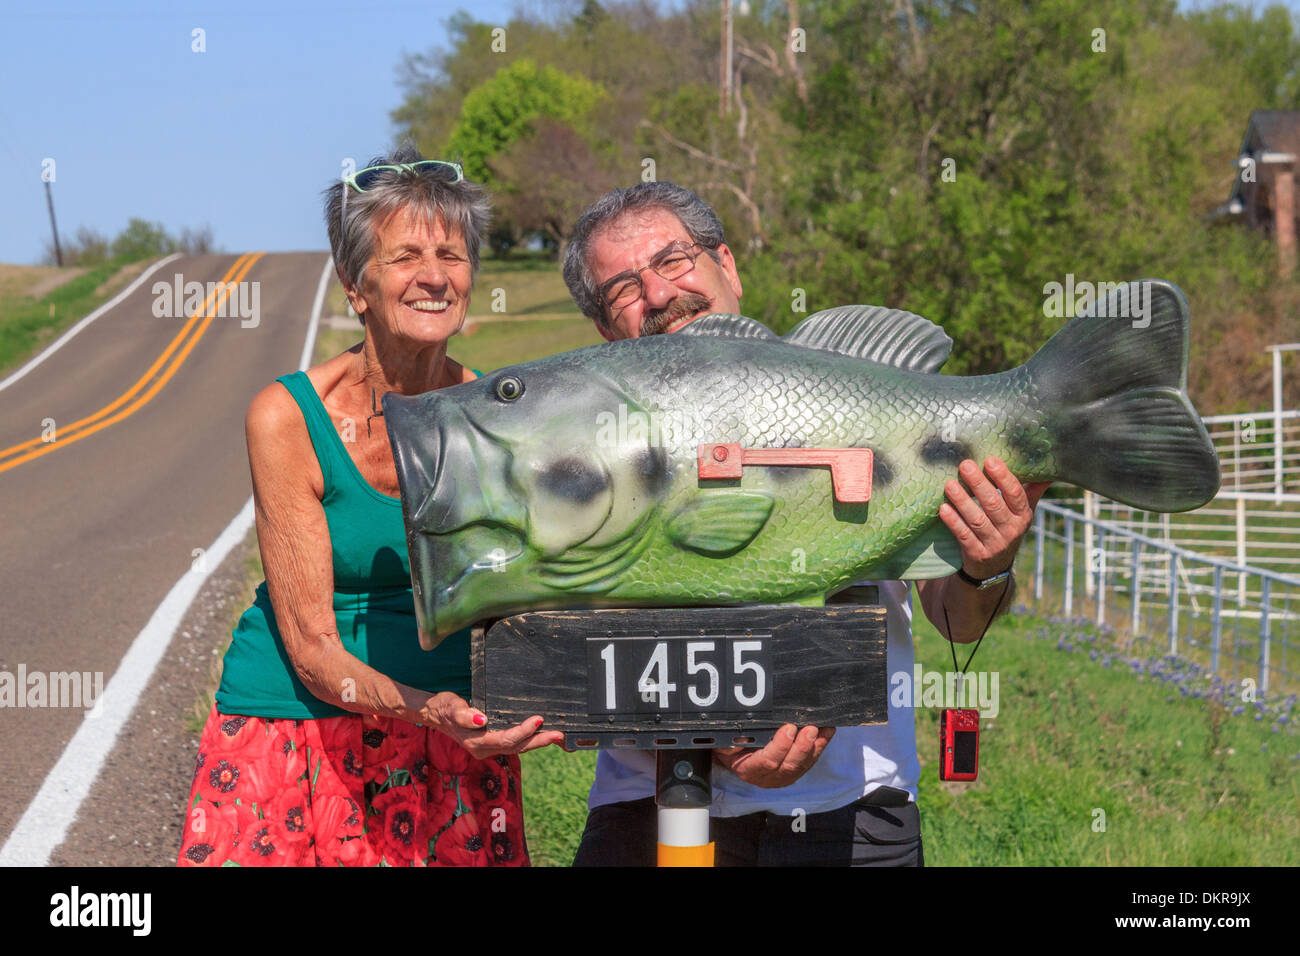 Fun box funny picture funny pic pic of fun funny image - Ennis Texas Usa Bass Fun Funny Good Time Heavy Holding Mail Box Mailbox Seniors Man Woman